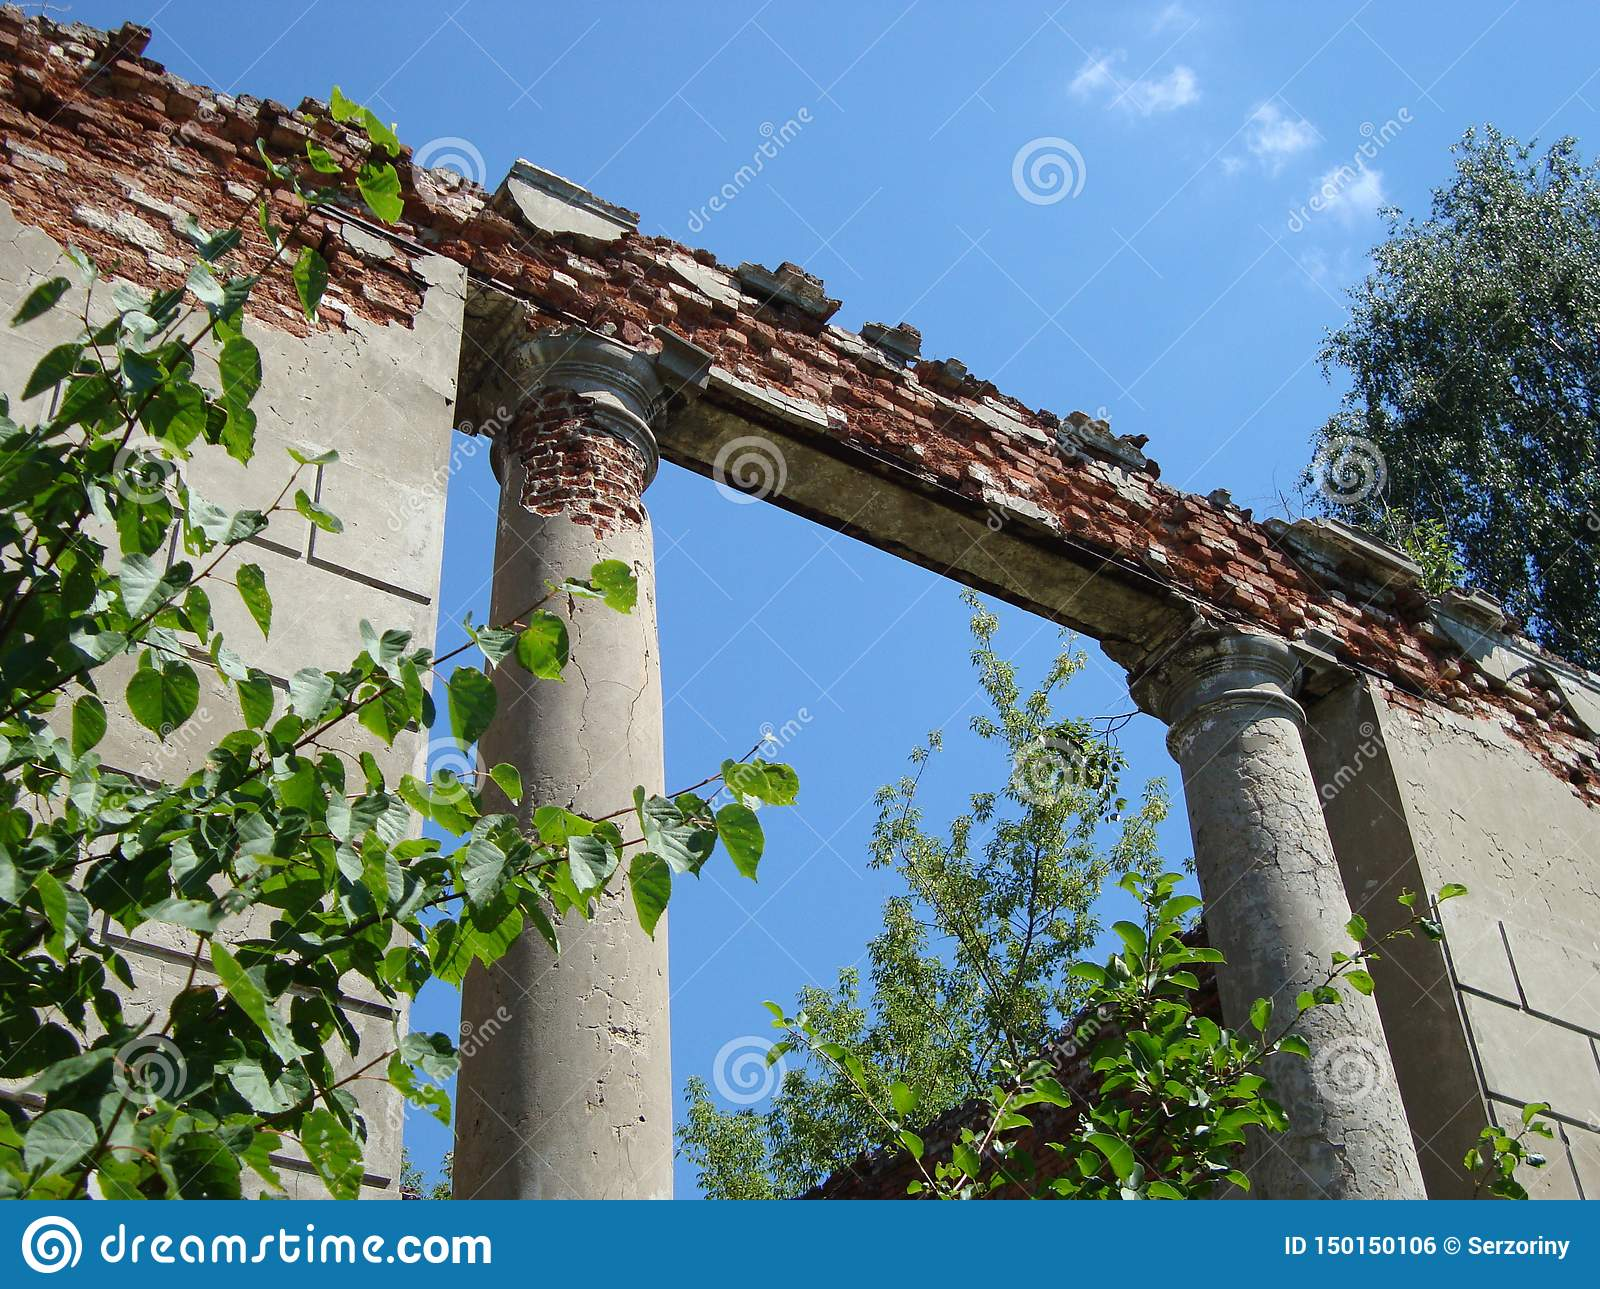 Crumbling ruins of old-time noble manor on a clear day